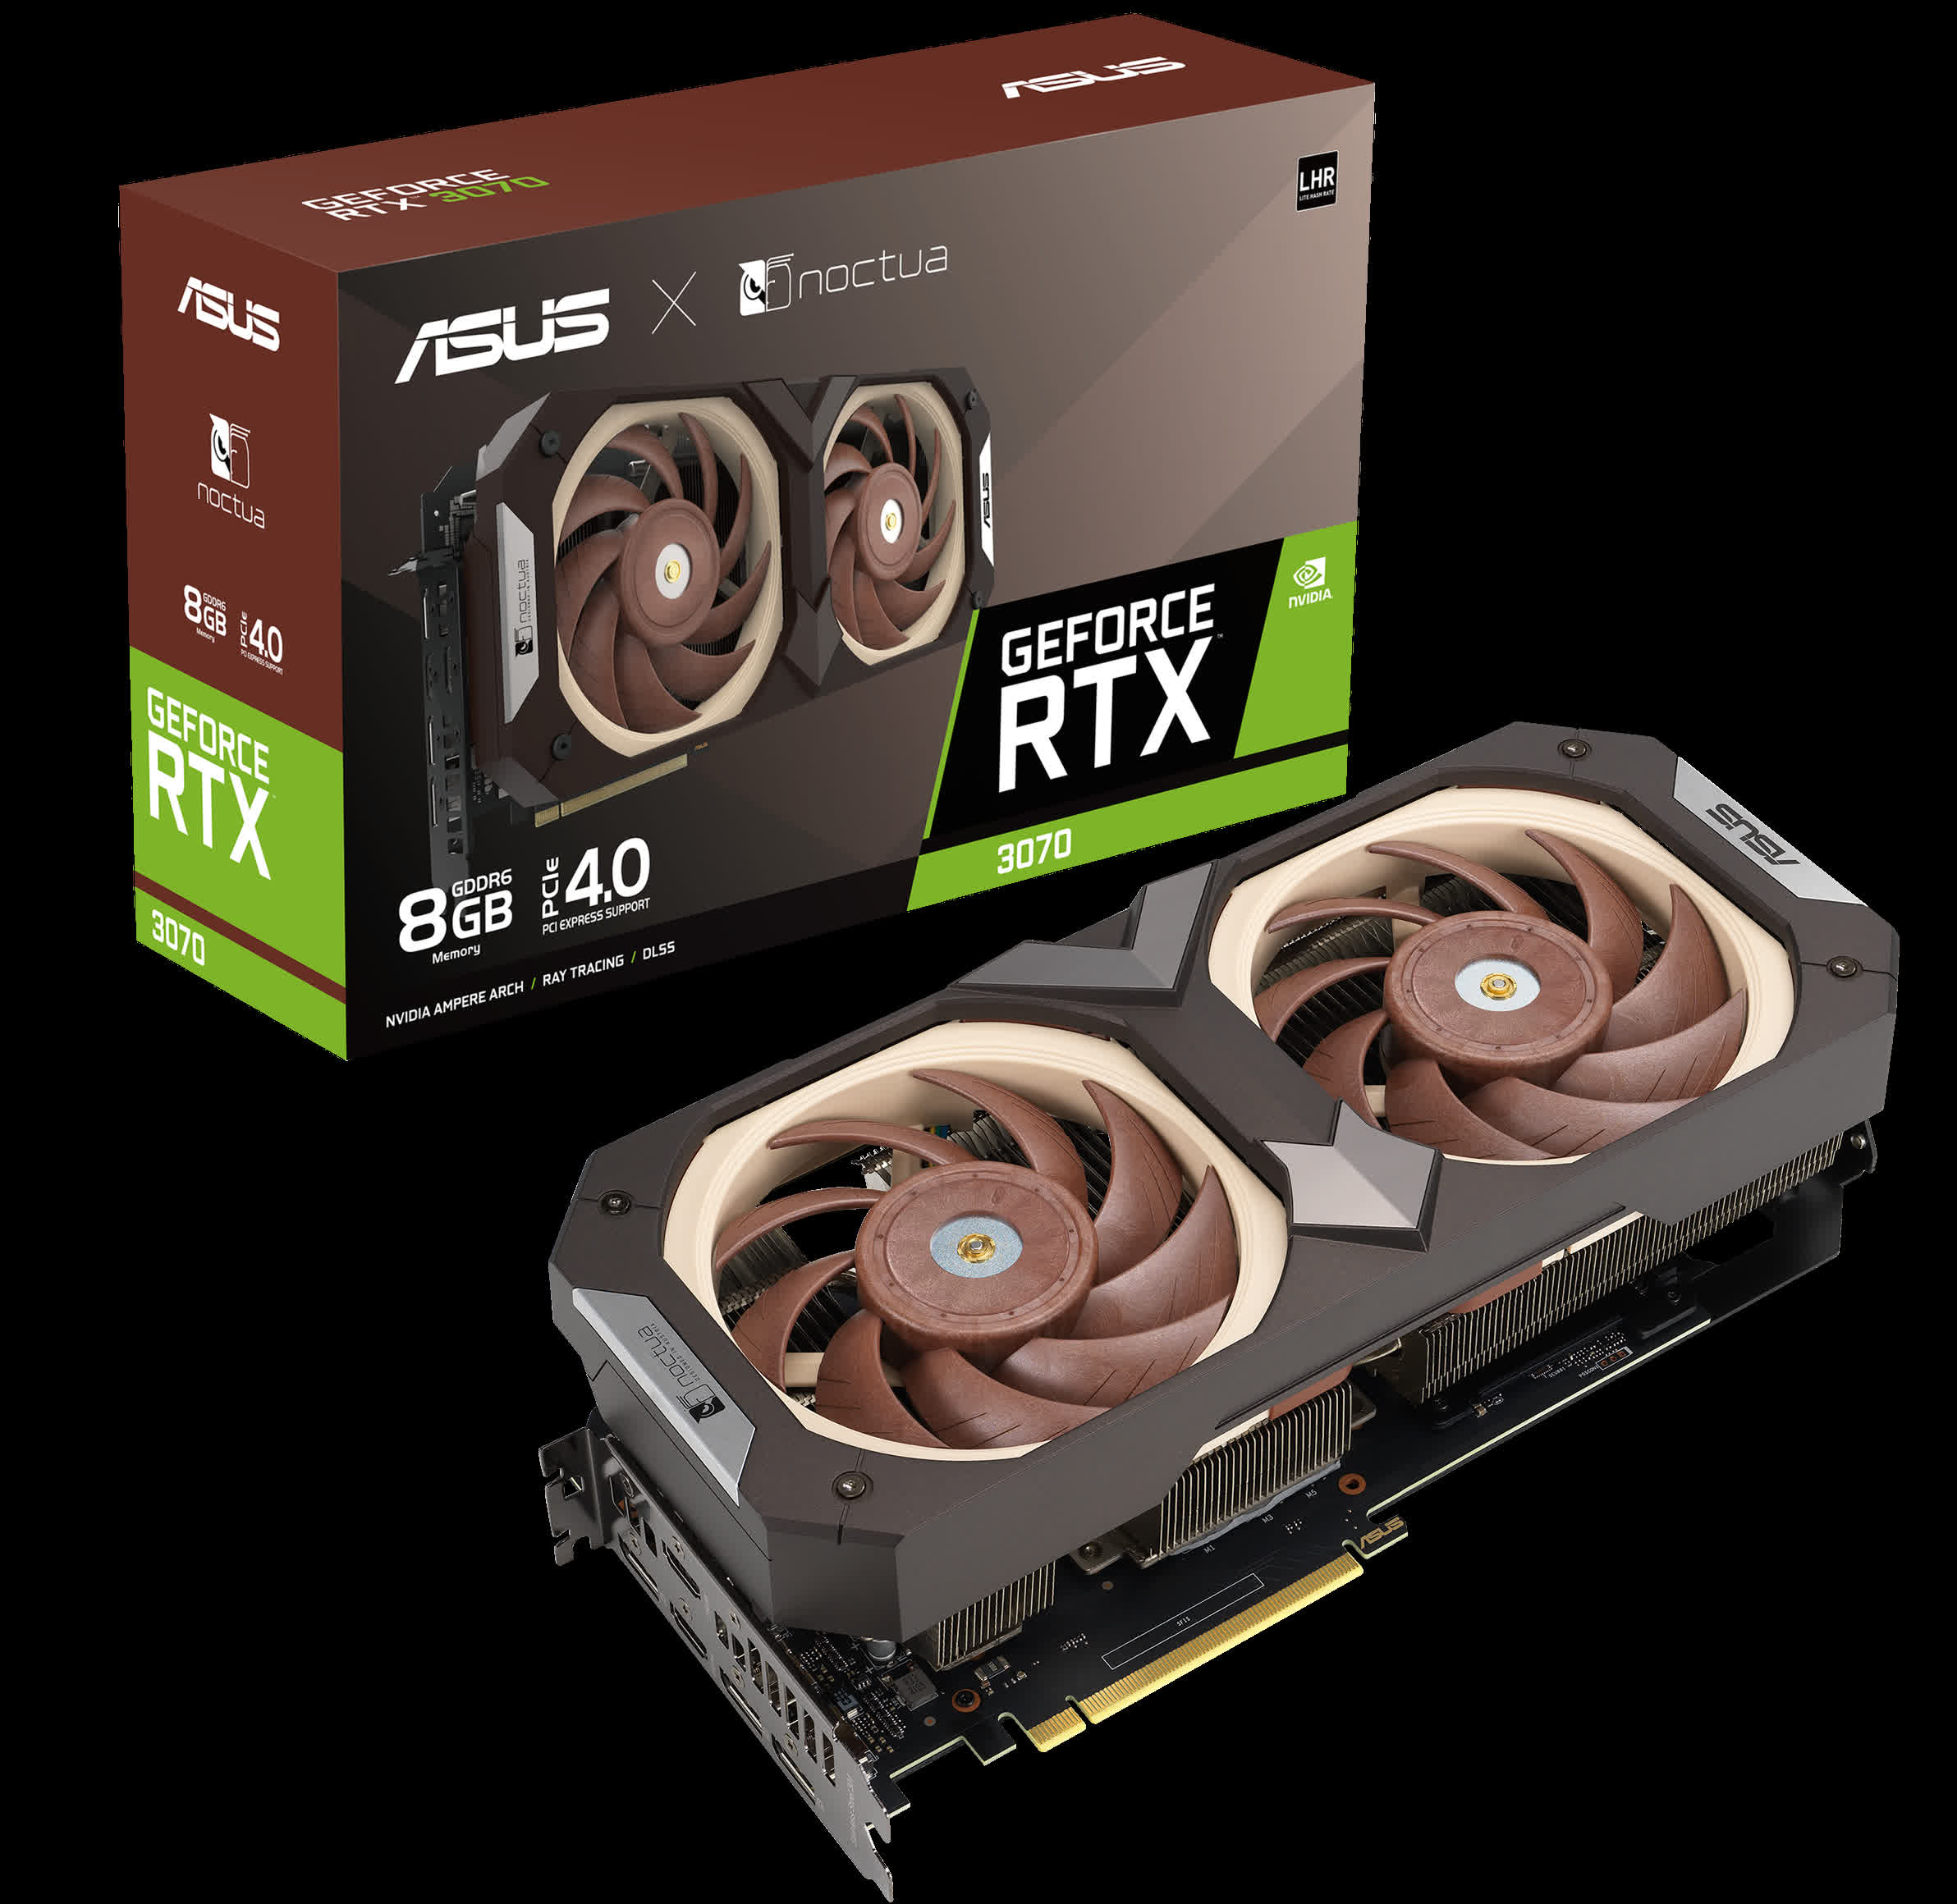 Asus GeForce RTX 3070 Noctua Edition GPU announced in standard and overclocked versions